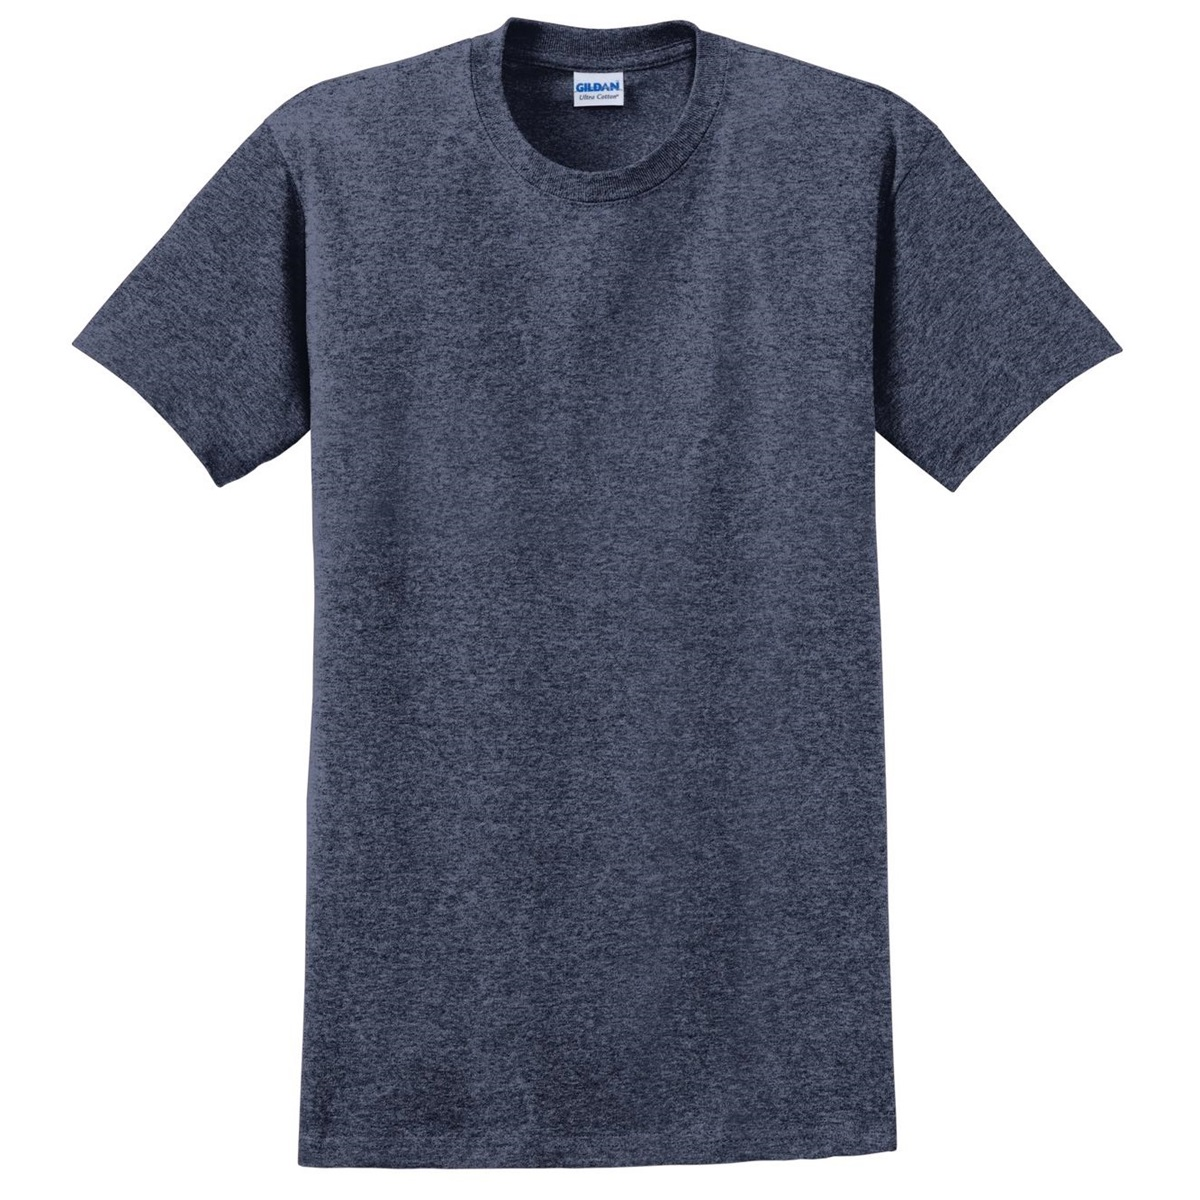 Gildan 2000 Ultra Cotton T Shirt Heathered Navy